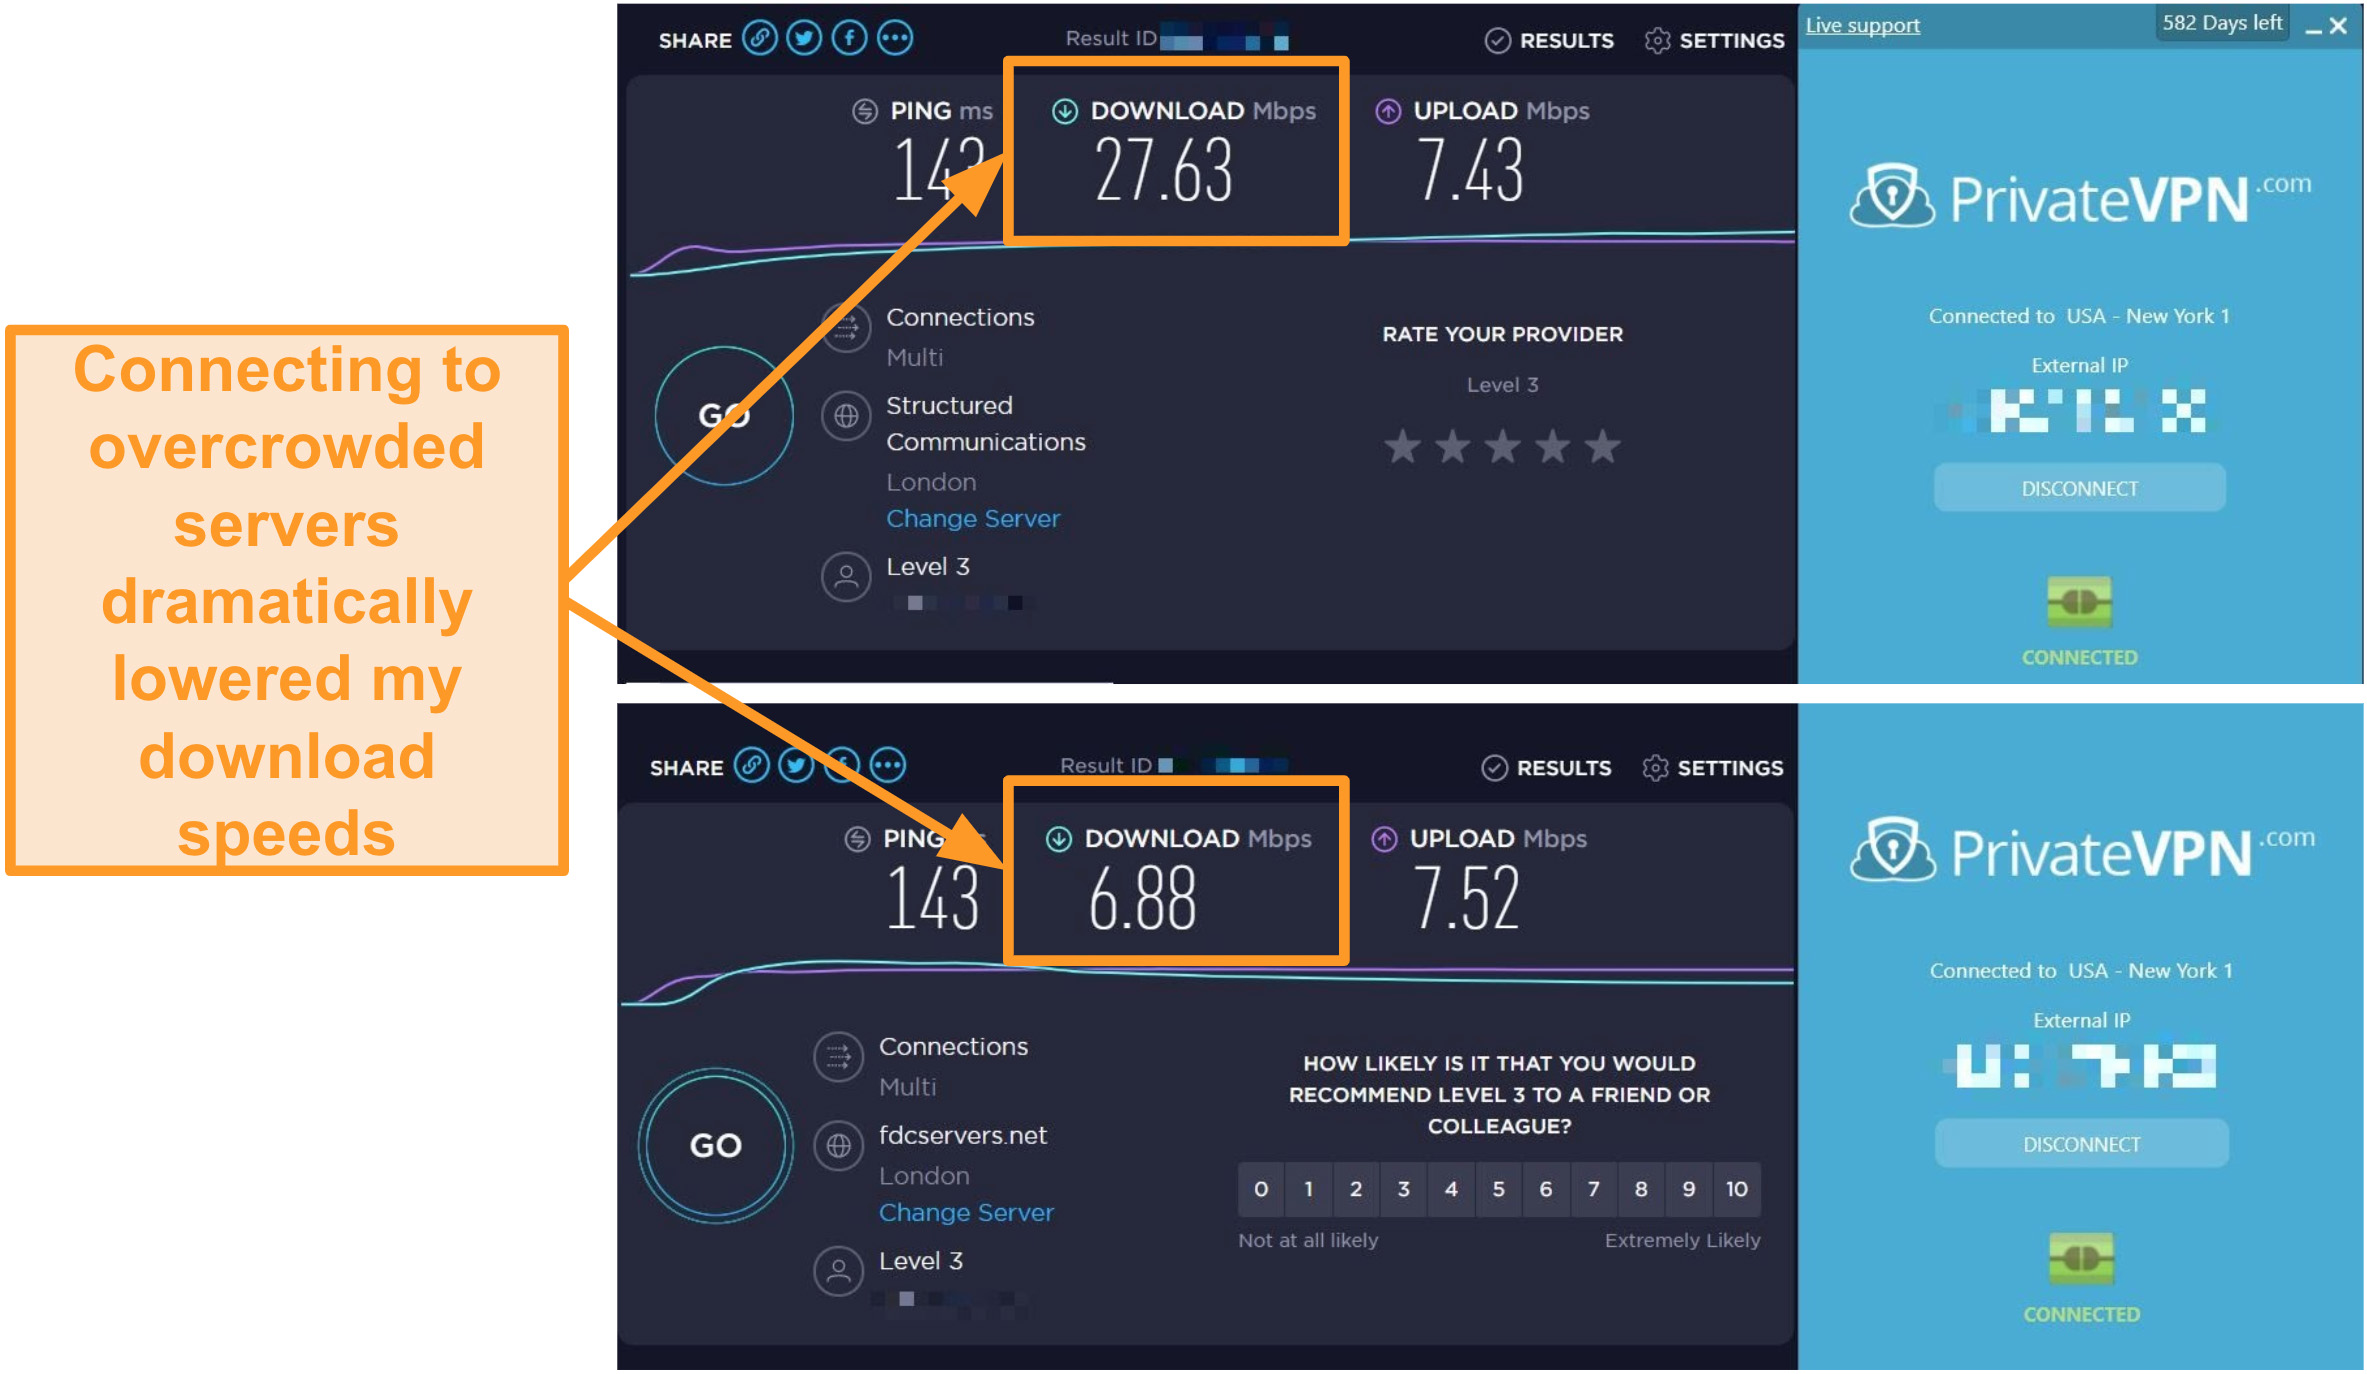 Screenshot of PrivateVPN speed comparison showing a dramatic speed drop